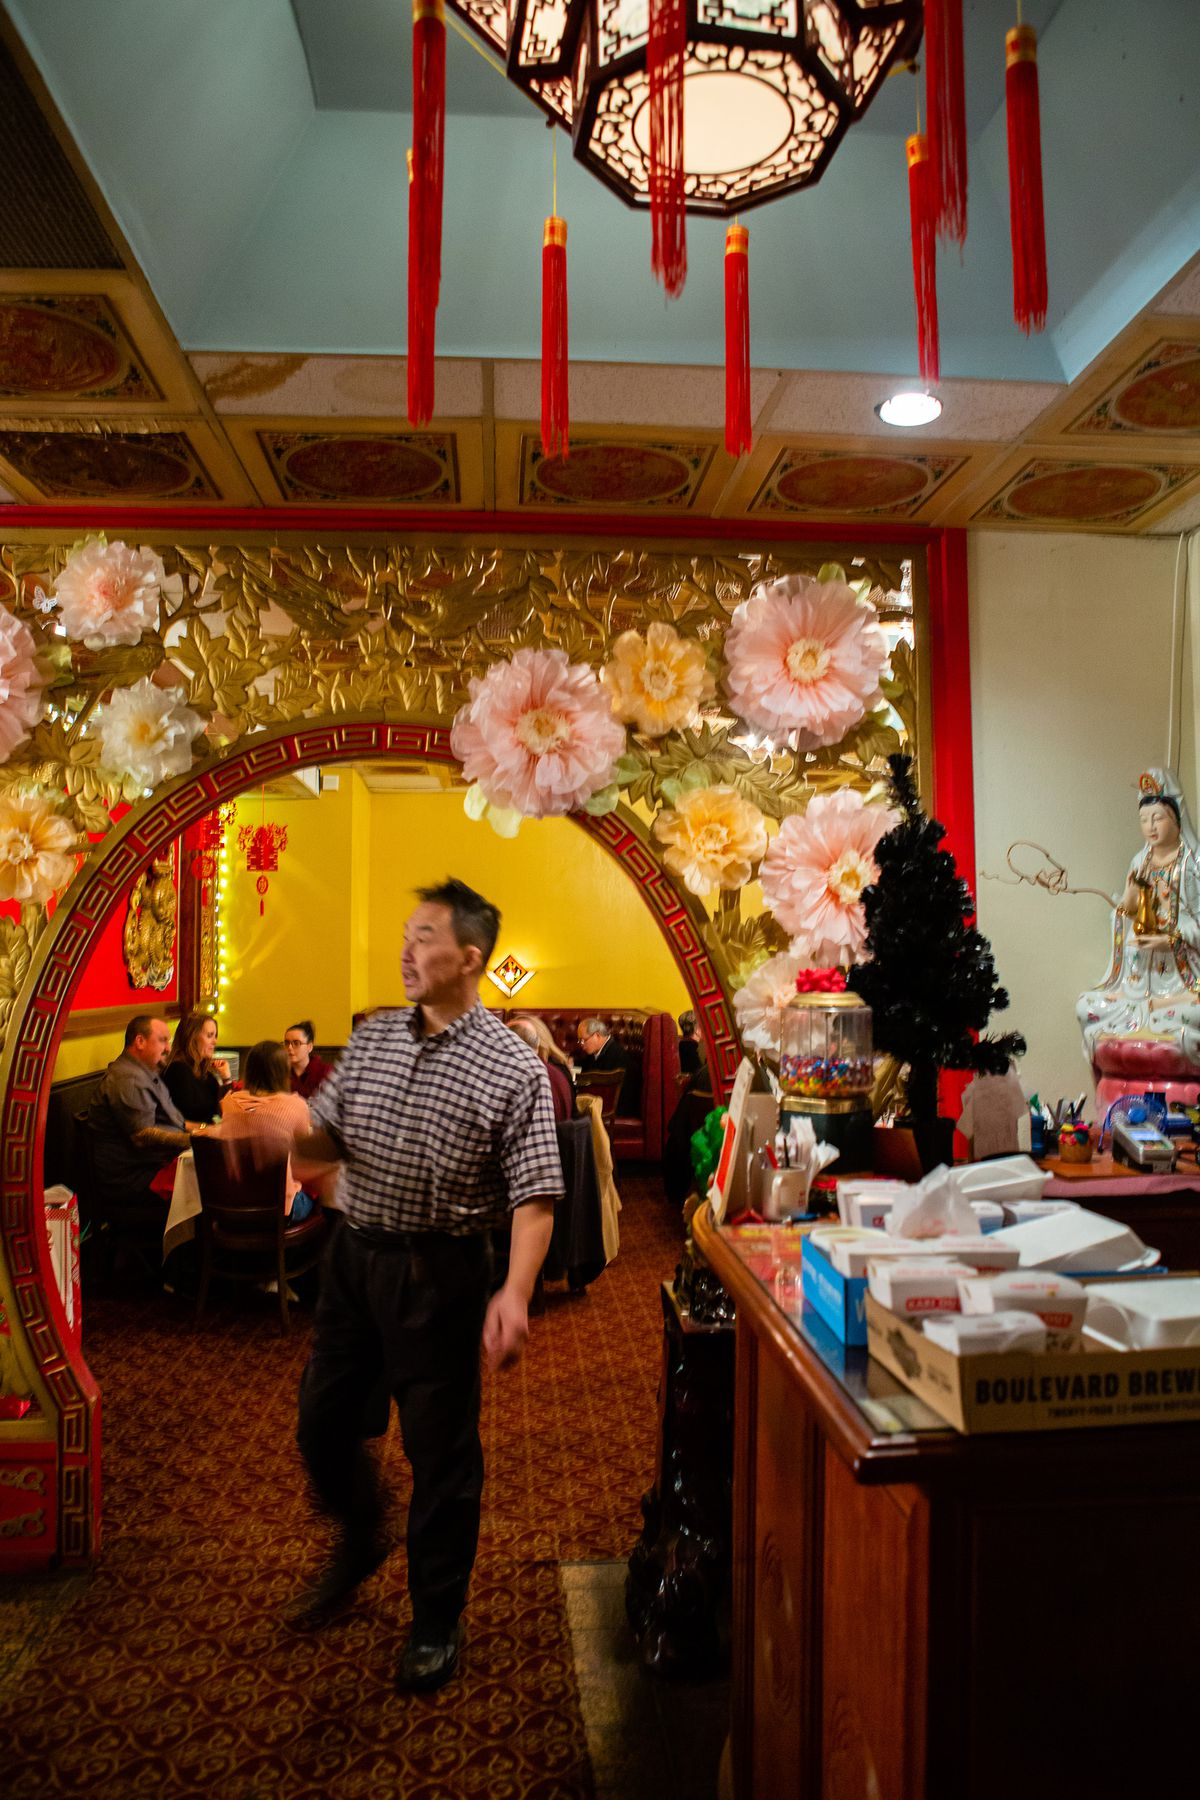 Man stands under curved archway in a Chinese restaurant.